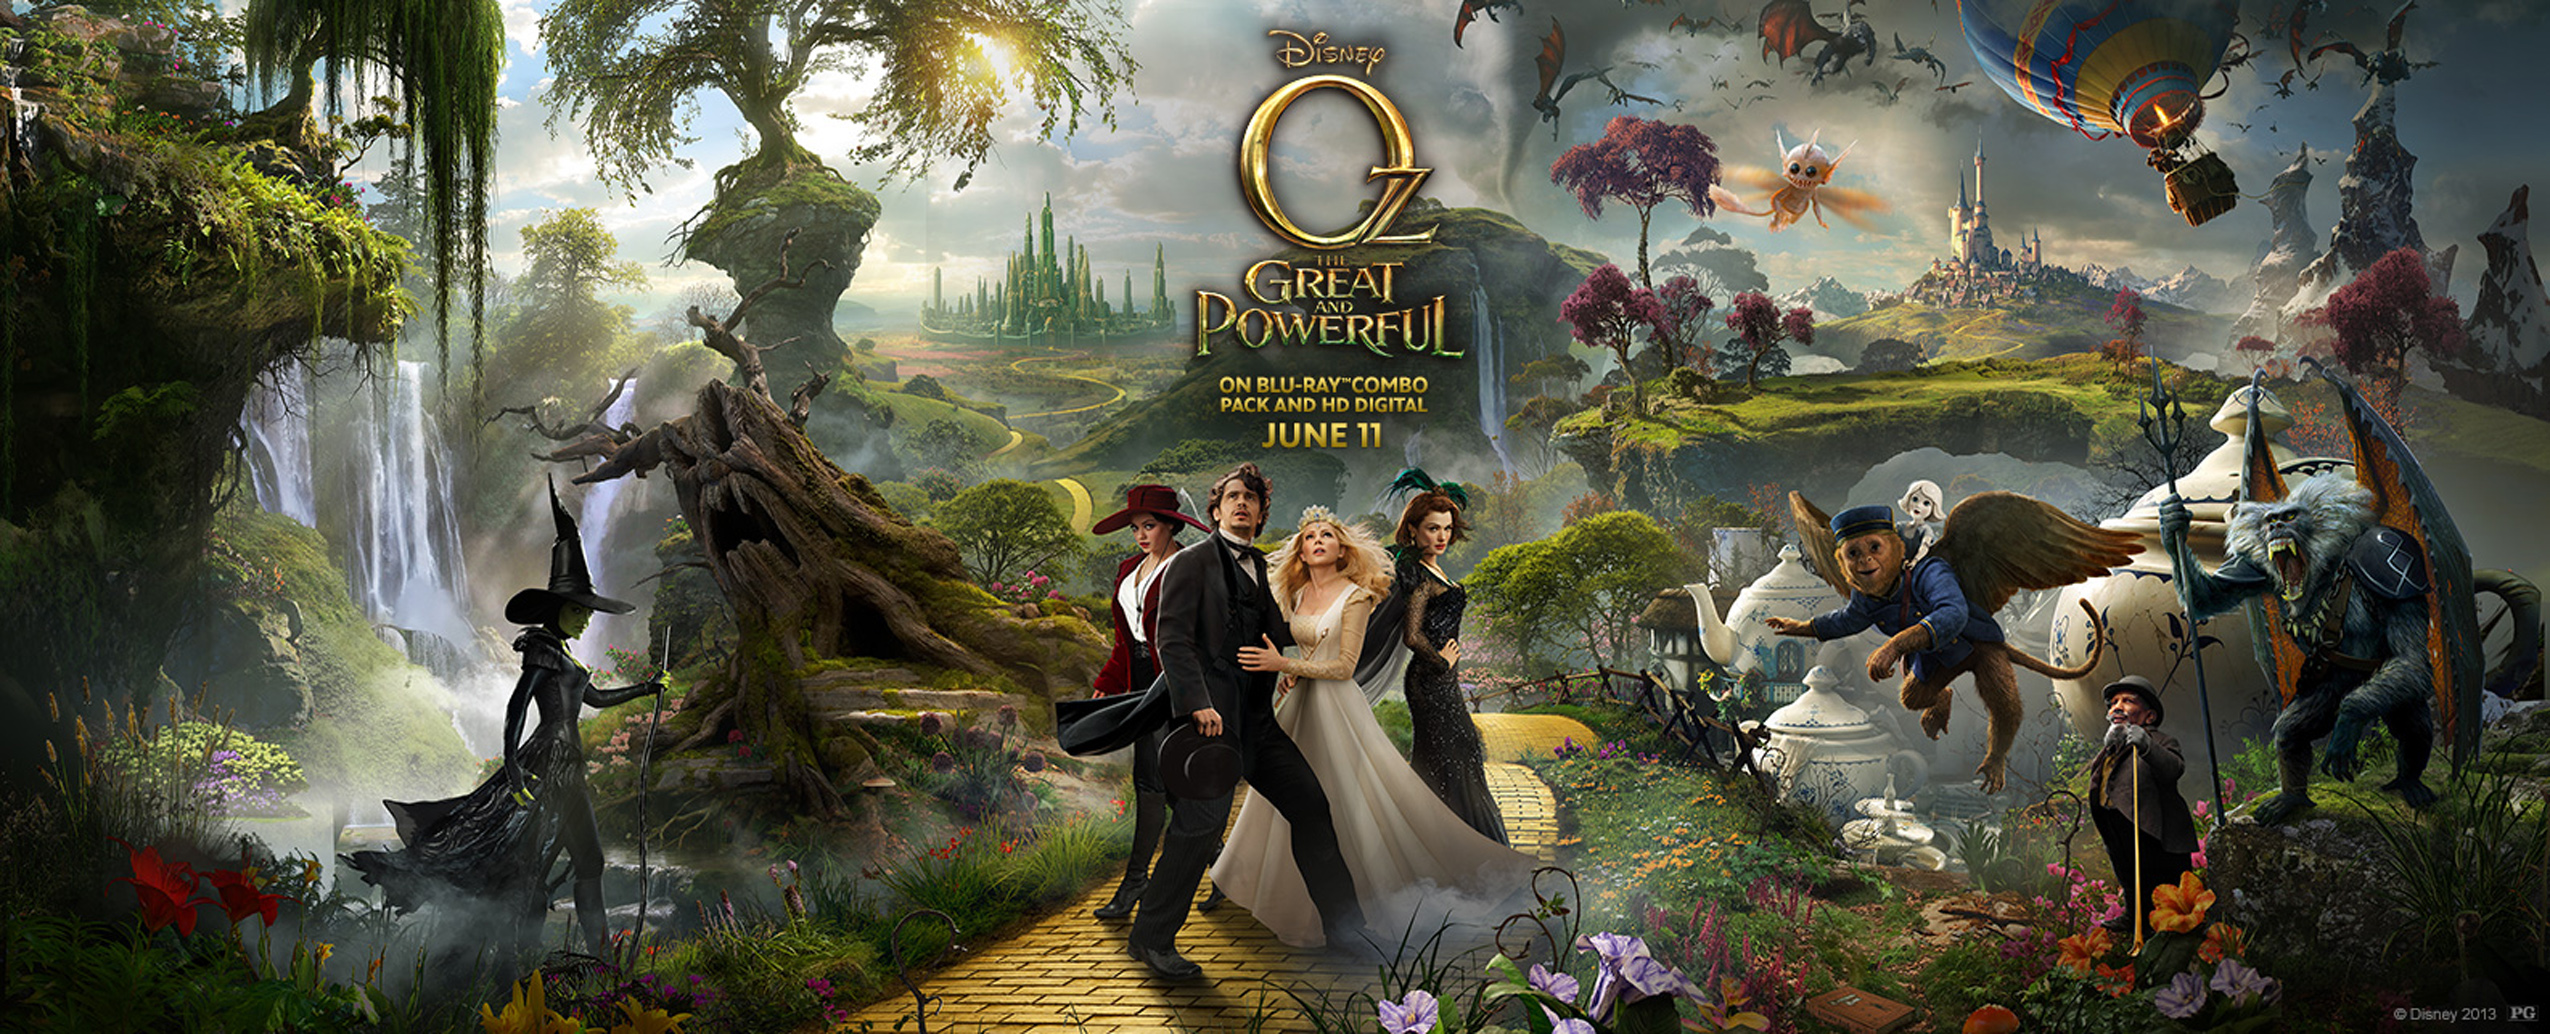 Animators and actor bring China Girl to life in 'Oz The ... Oz The Great And Powerful Cast And Crew